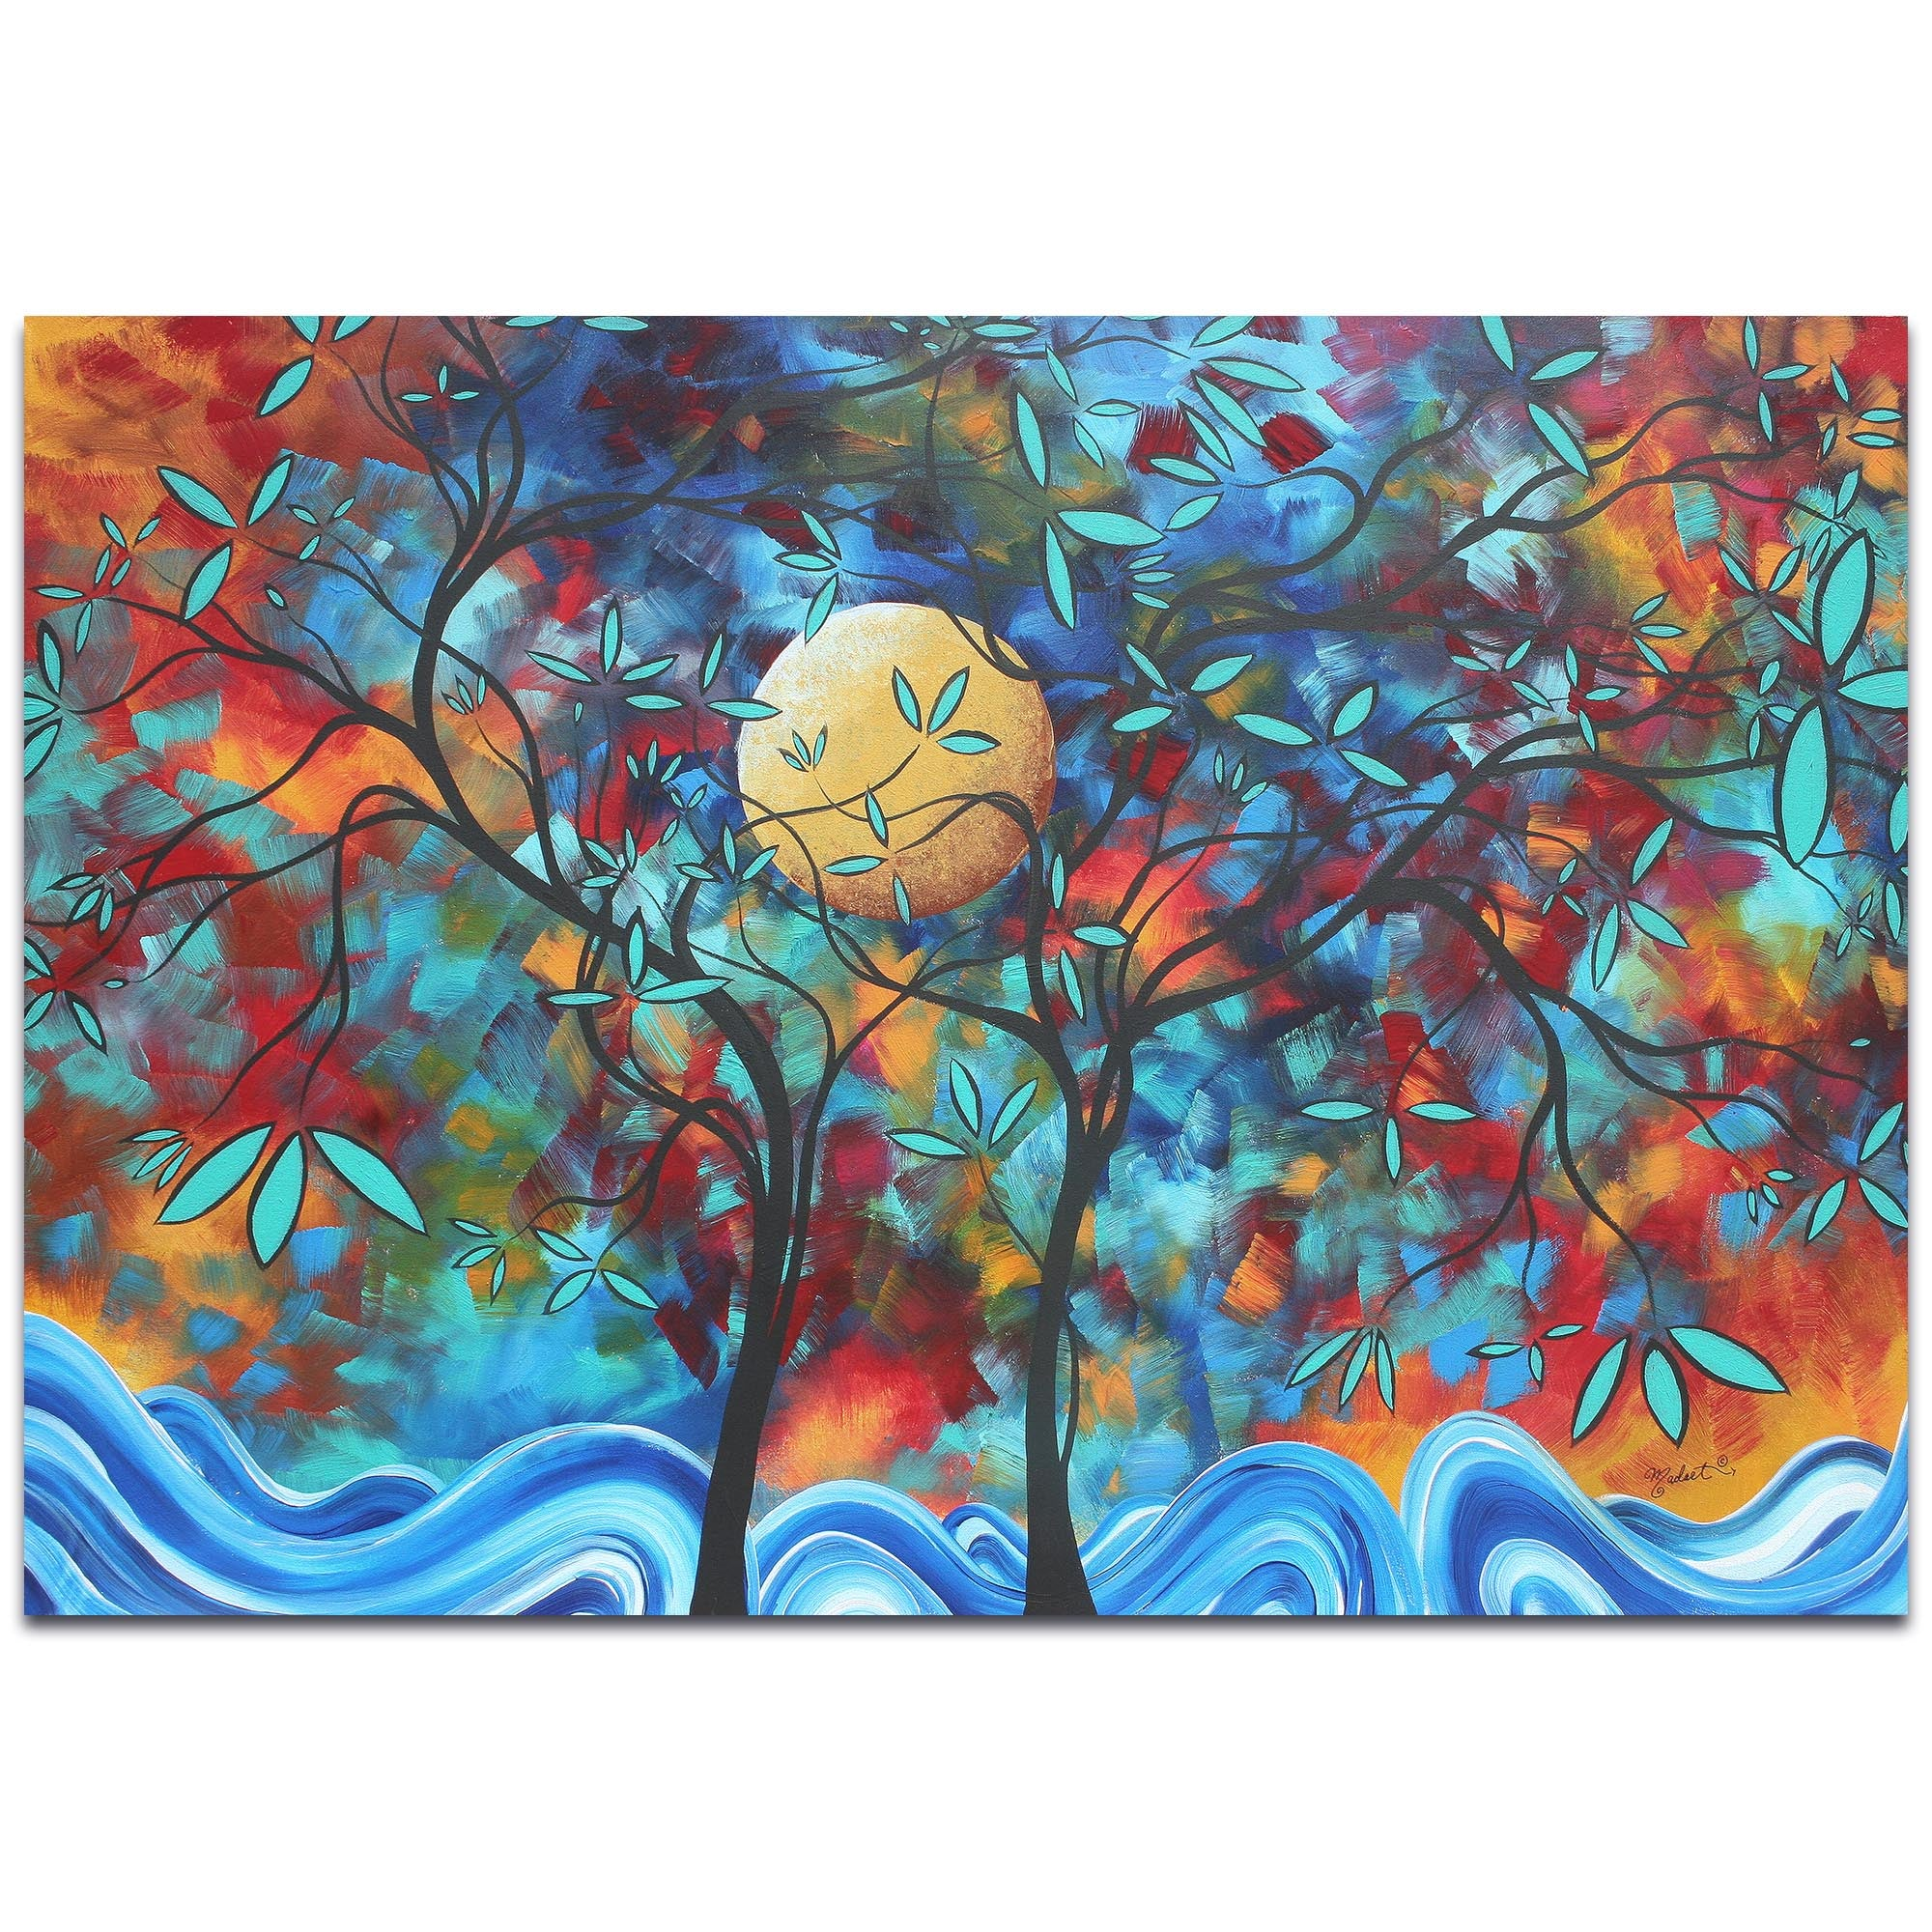 Lovers Moon by Megan Duncanson - Landscape Painting on Metal or Acrylic